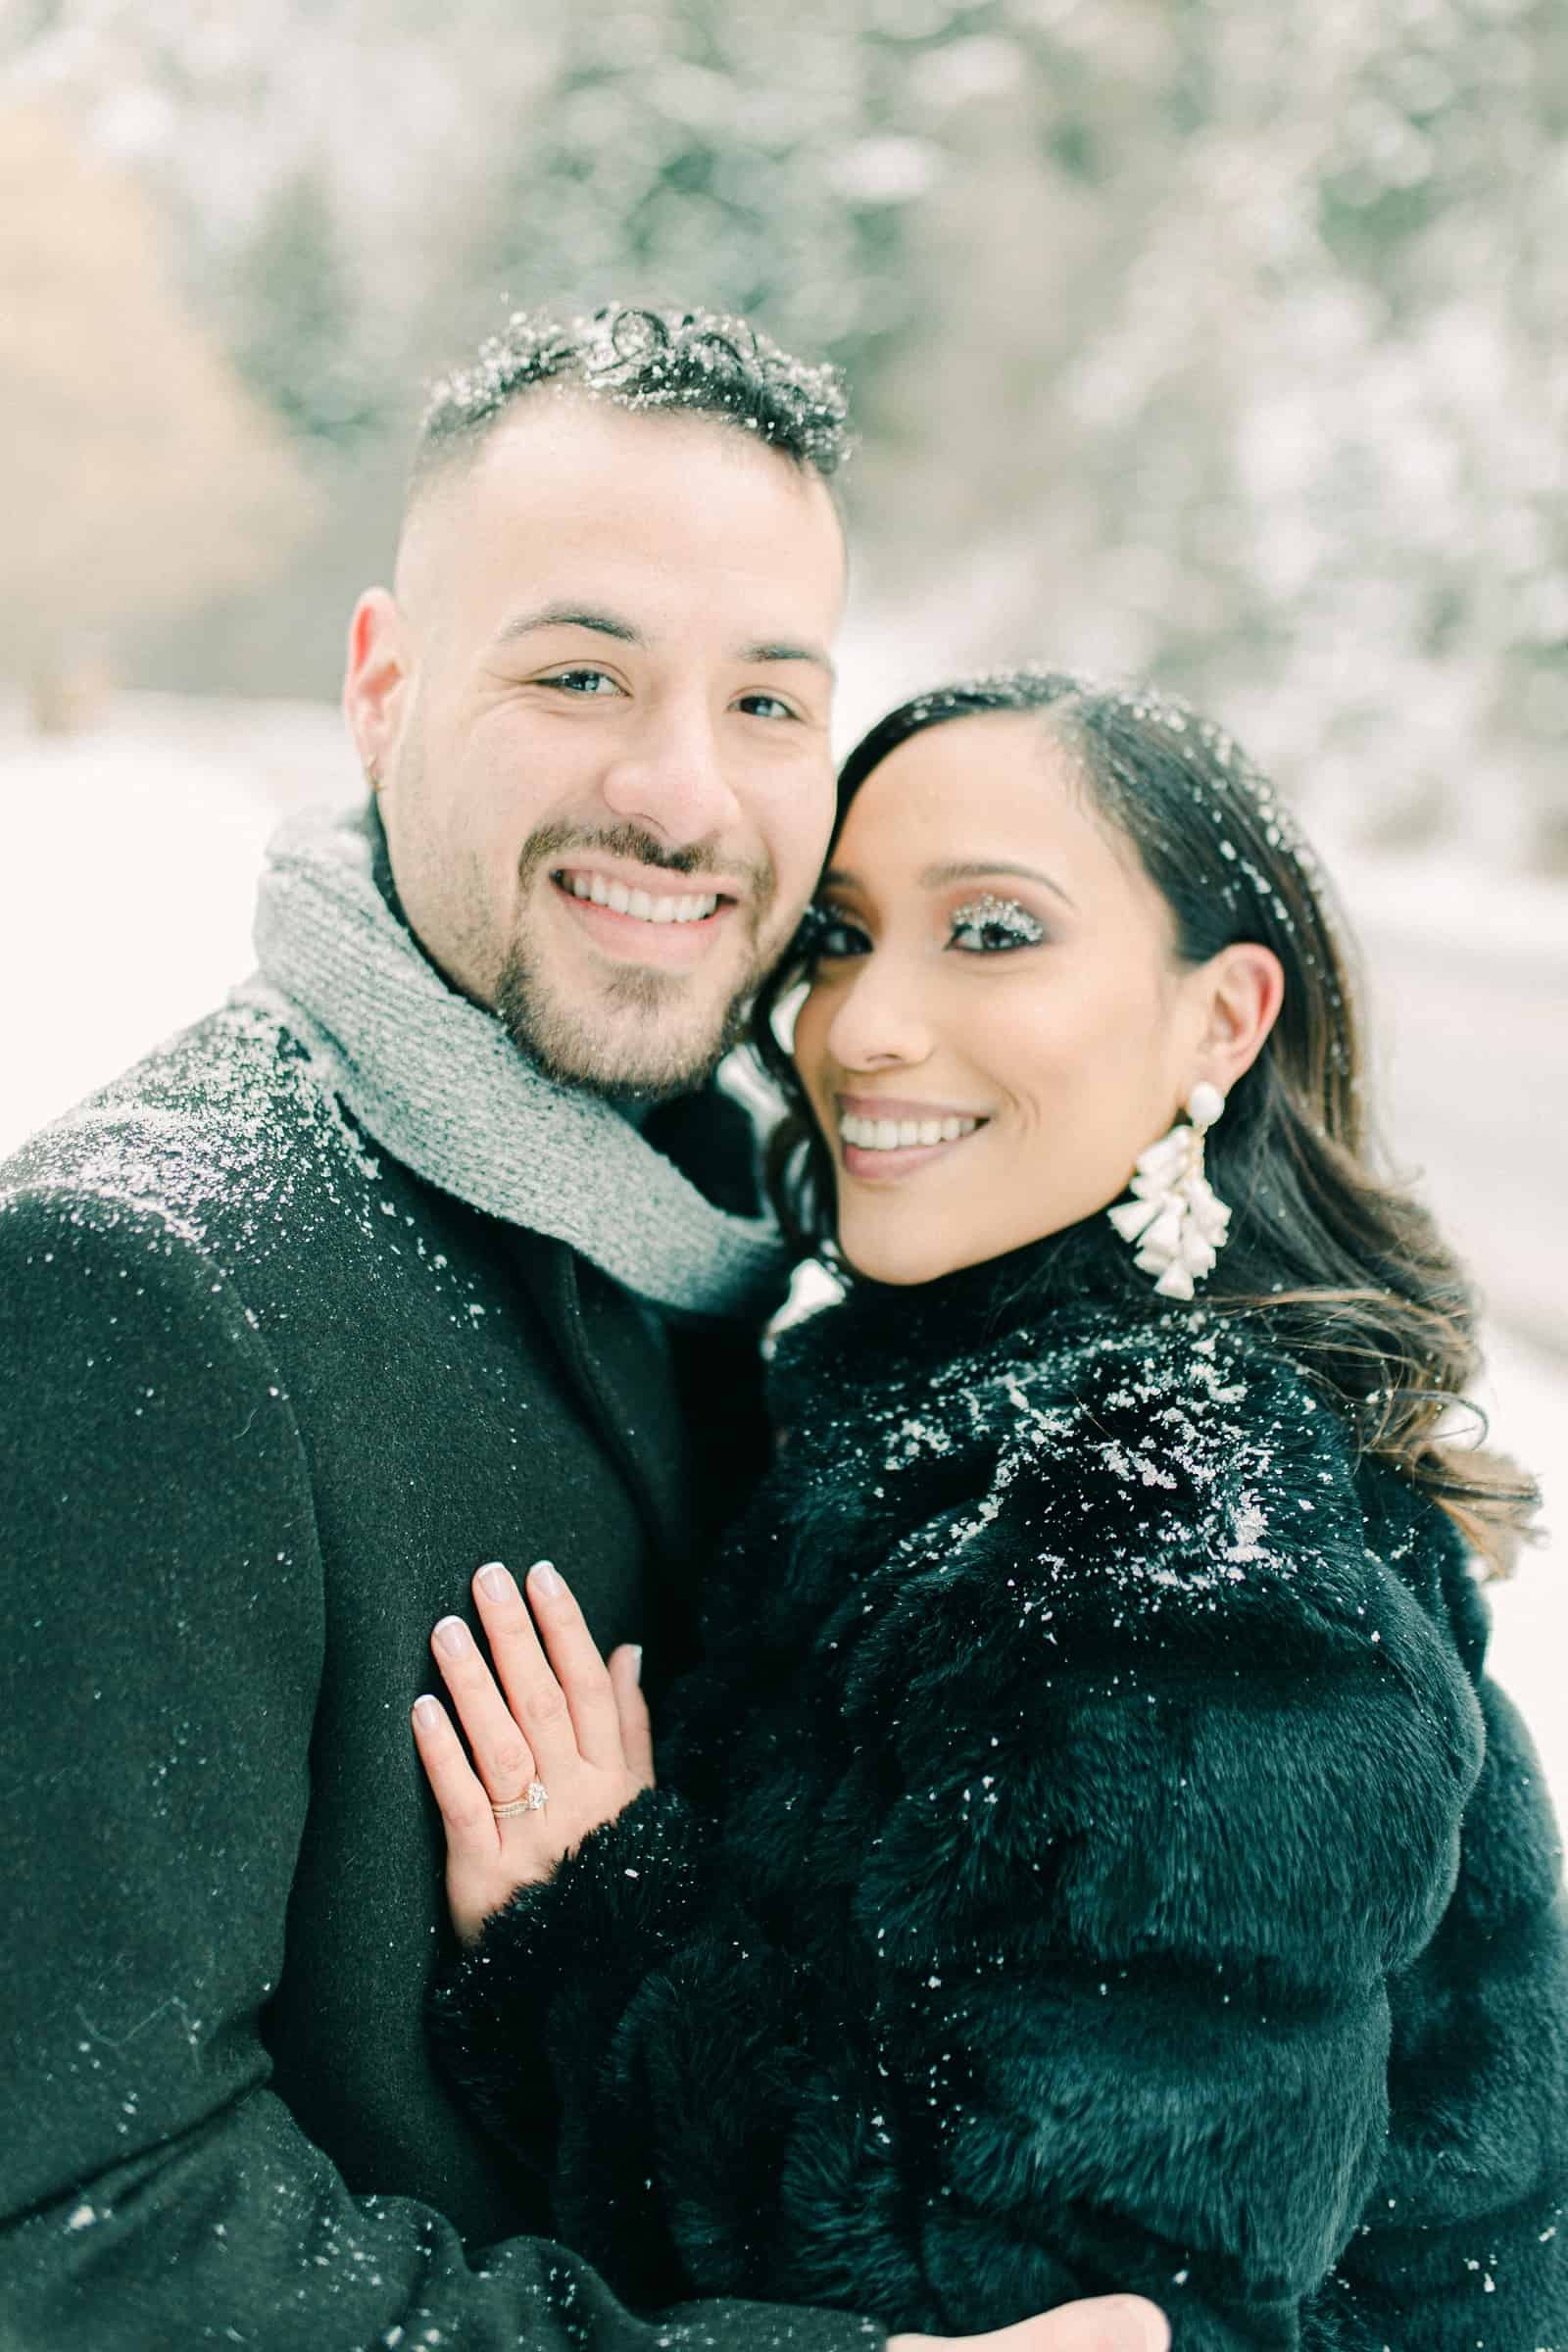 Couple smiling in snowy winter engagement session, snow on eyelashes